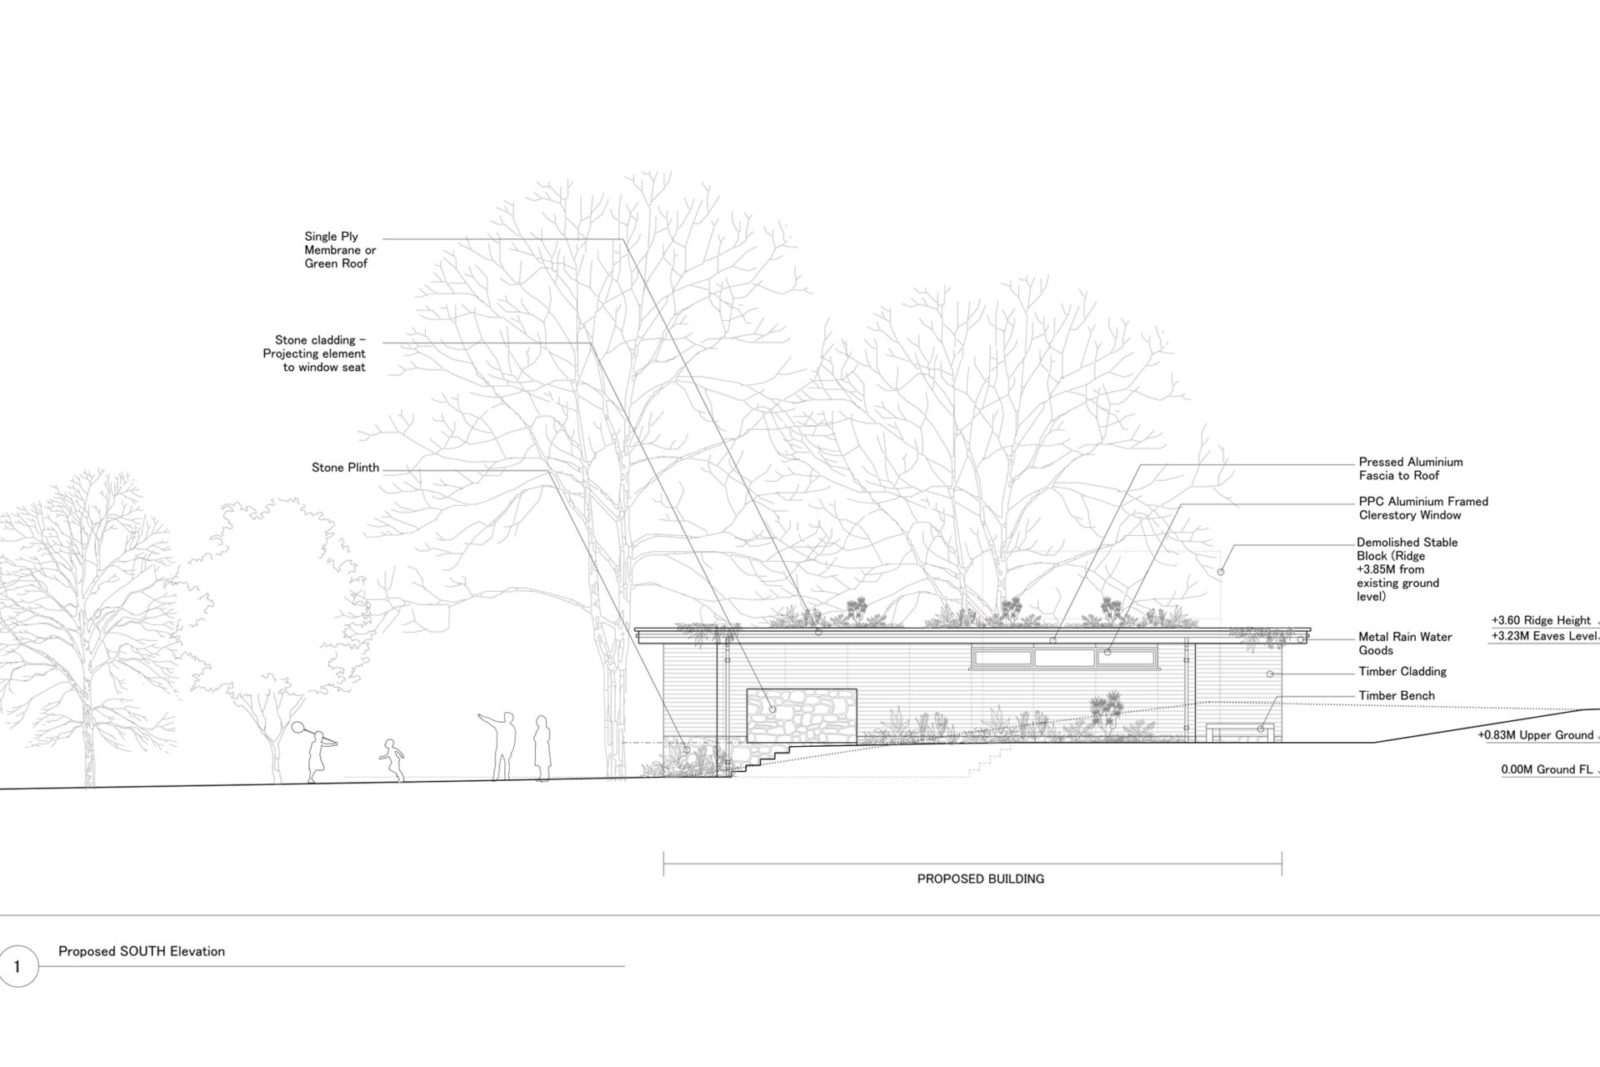 Contemporary residence 'Driftwood' submitted for Planning – Rud Sawers Architects, Devon